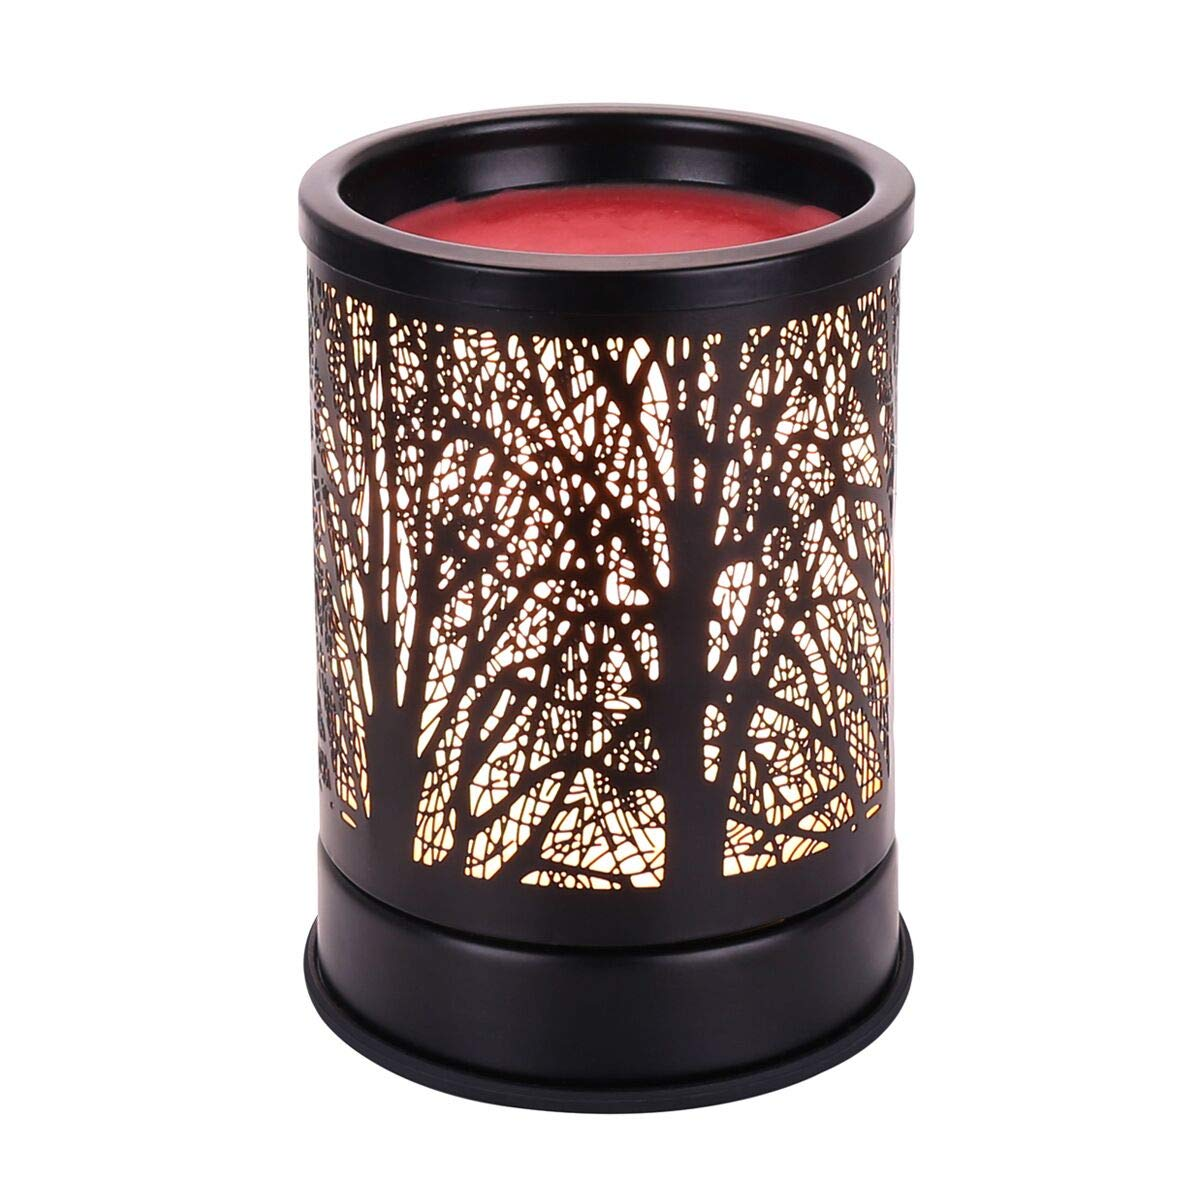 JUWA Wax Warmer Electric Scented Candle Warmer Essential Oil Heater Black Metal Forest Design for Home Decor